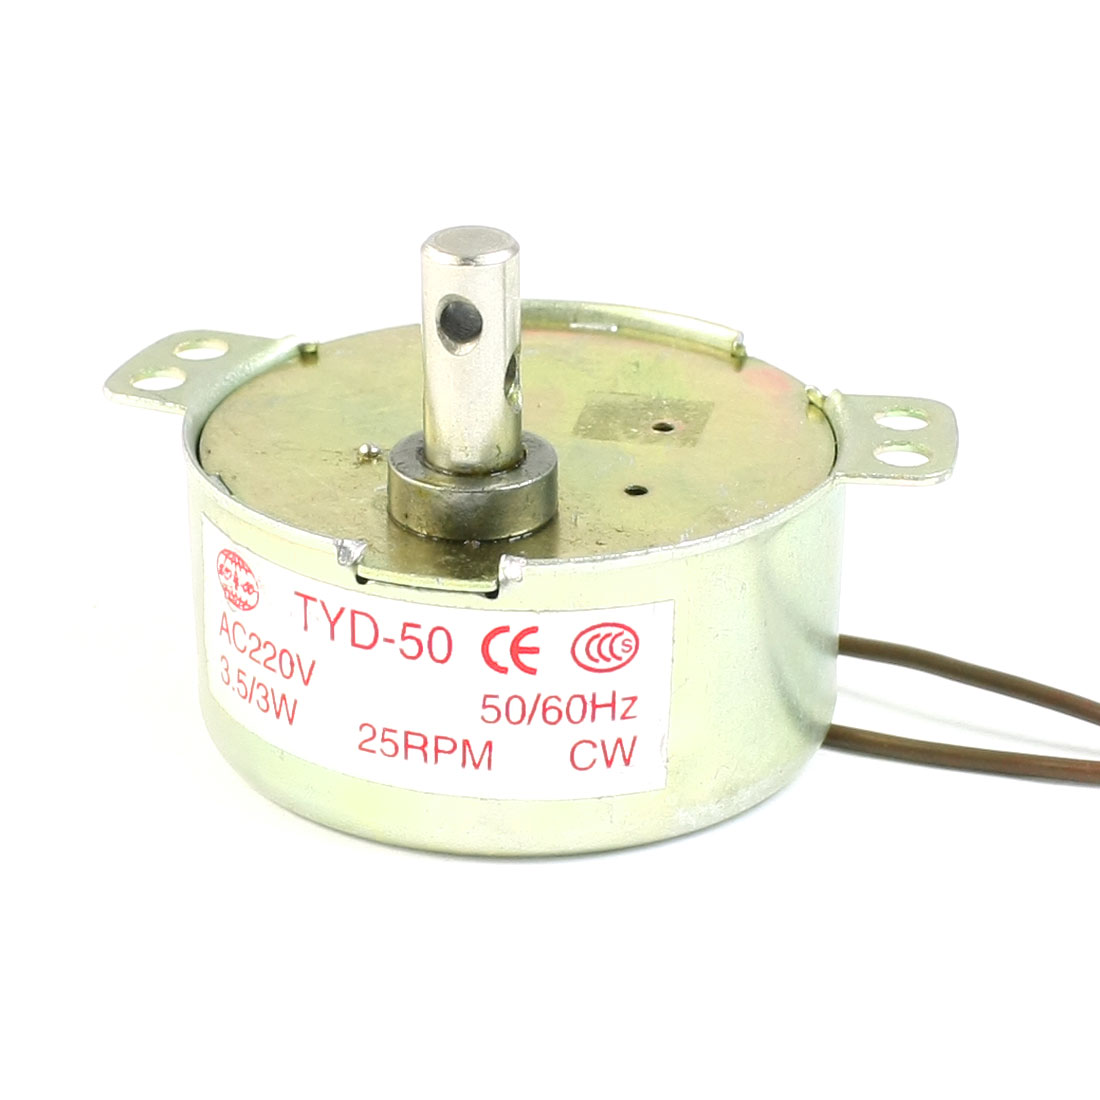 25RPM AC220V 3.5/3W 2 Wire Terminals Cylindrical Micro Motor